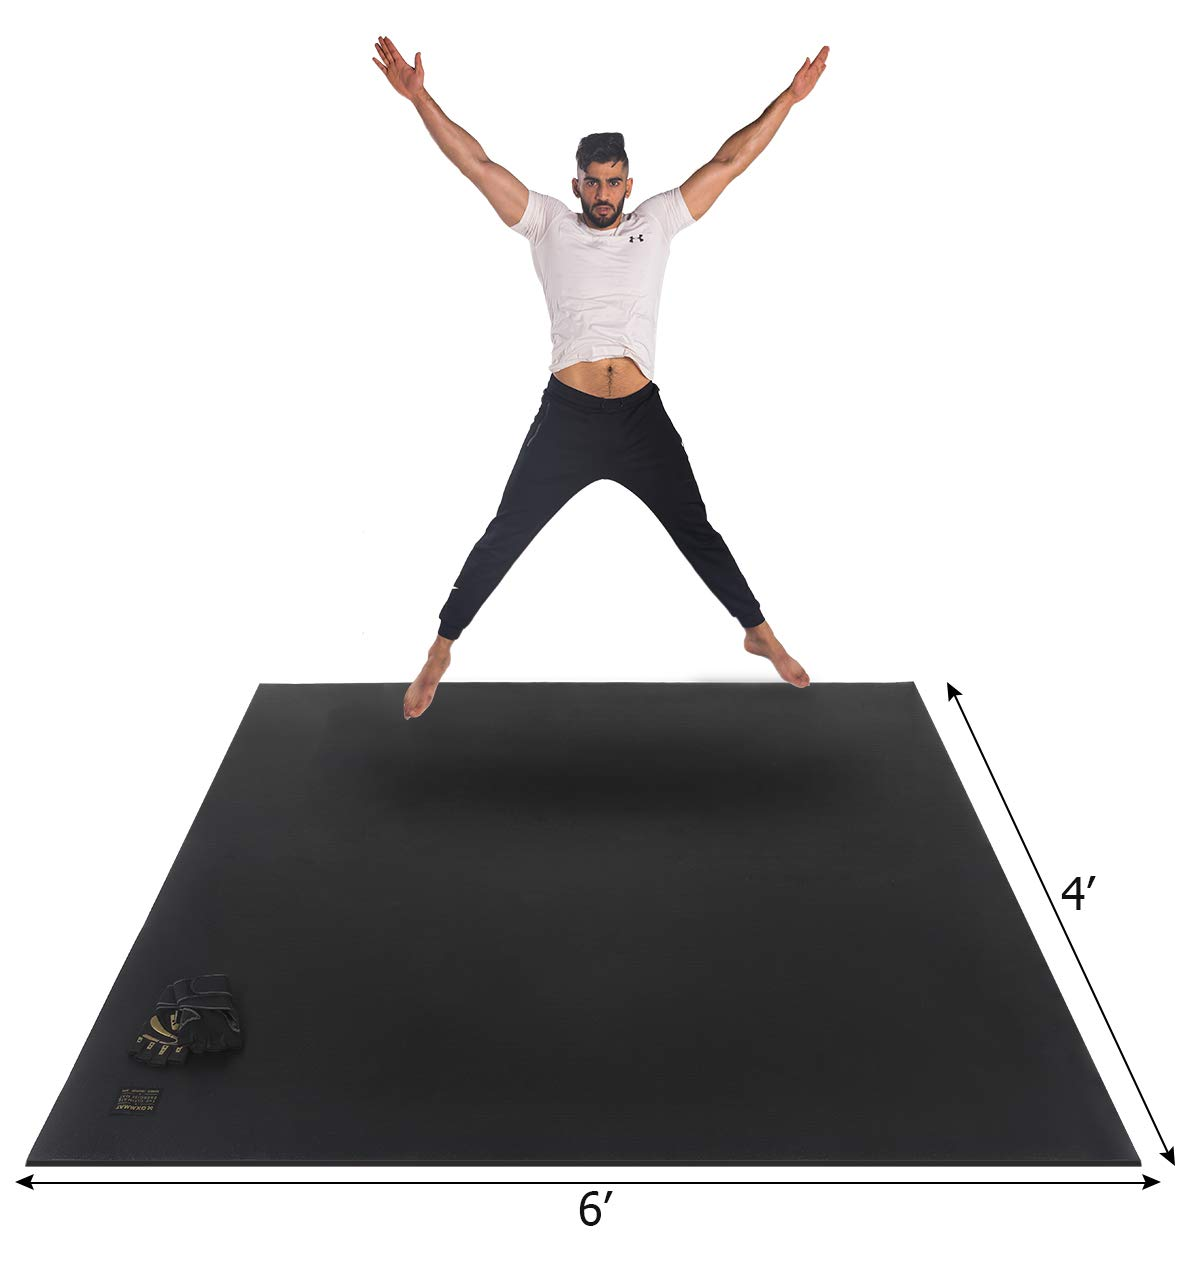 Gxmmat Large Exercise Mat 6'x 4'x 7mm Ultra Durable,Non-Slip,Thick Workout Mats for Home Gym Flooring- Plyo,MMA,Jump,Gymnastics,Cardio Mat